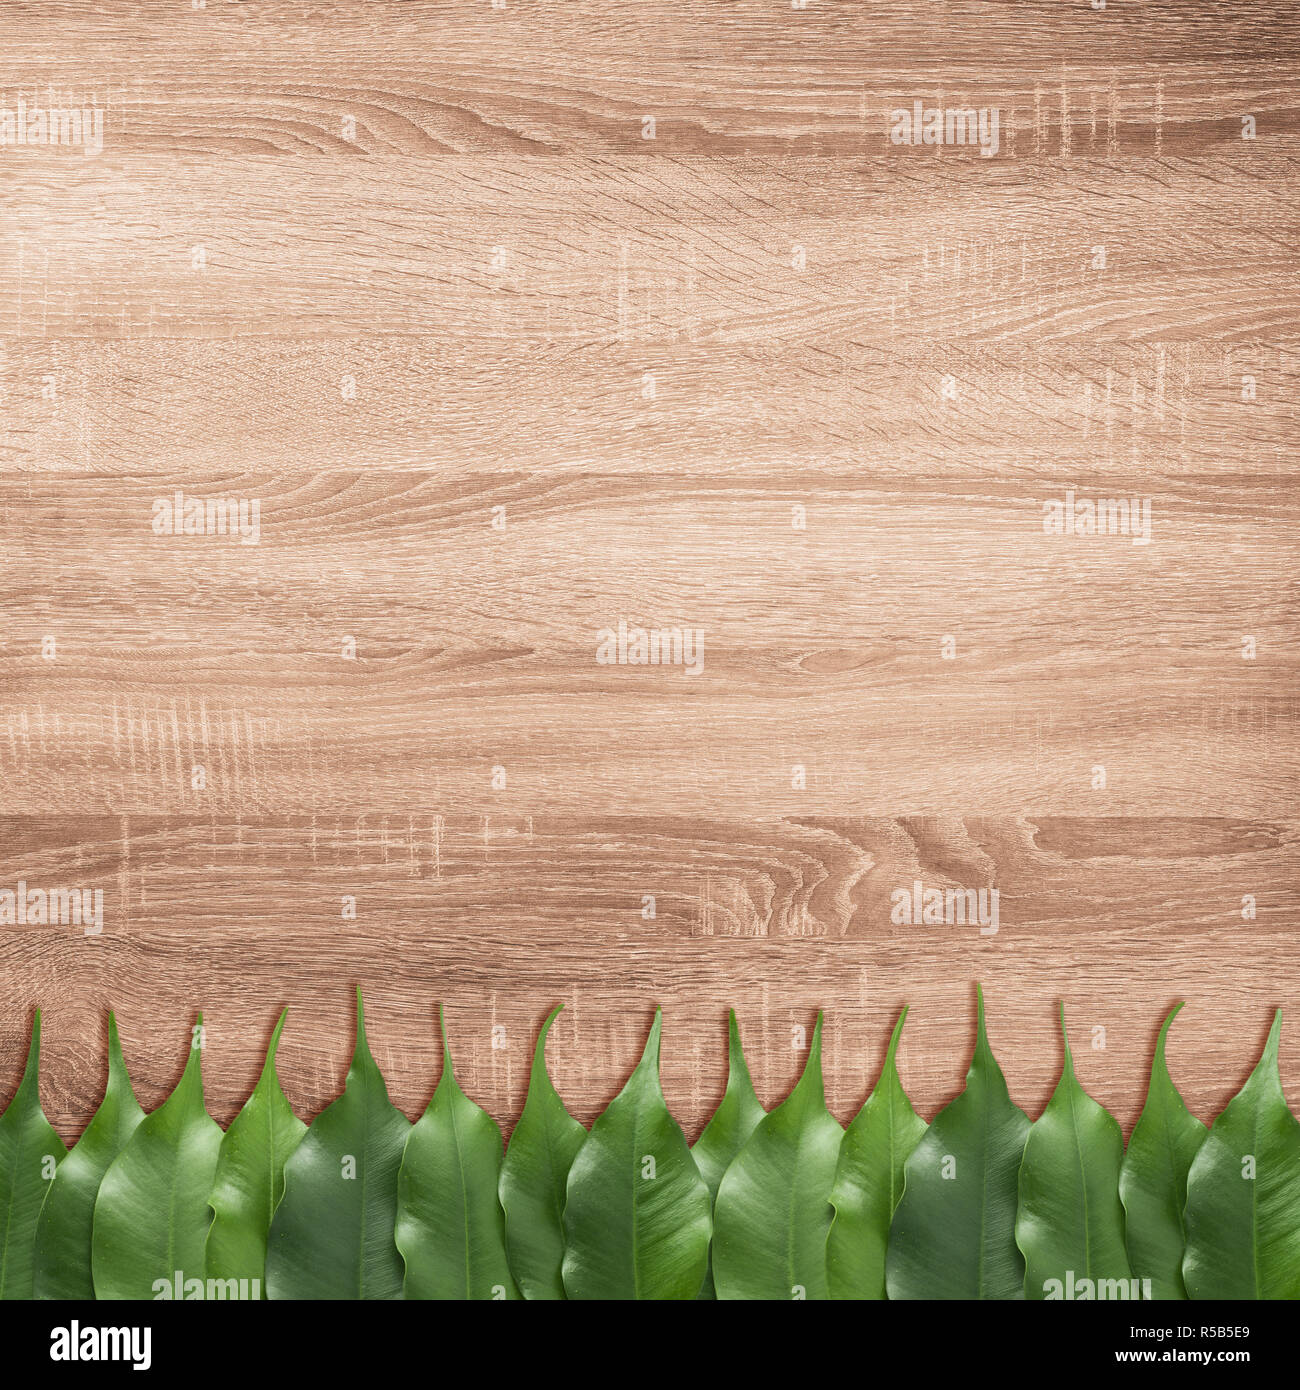 Ficus leaves on the brown wooden texture background Stock Photo